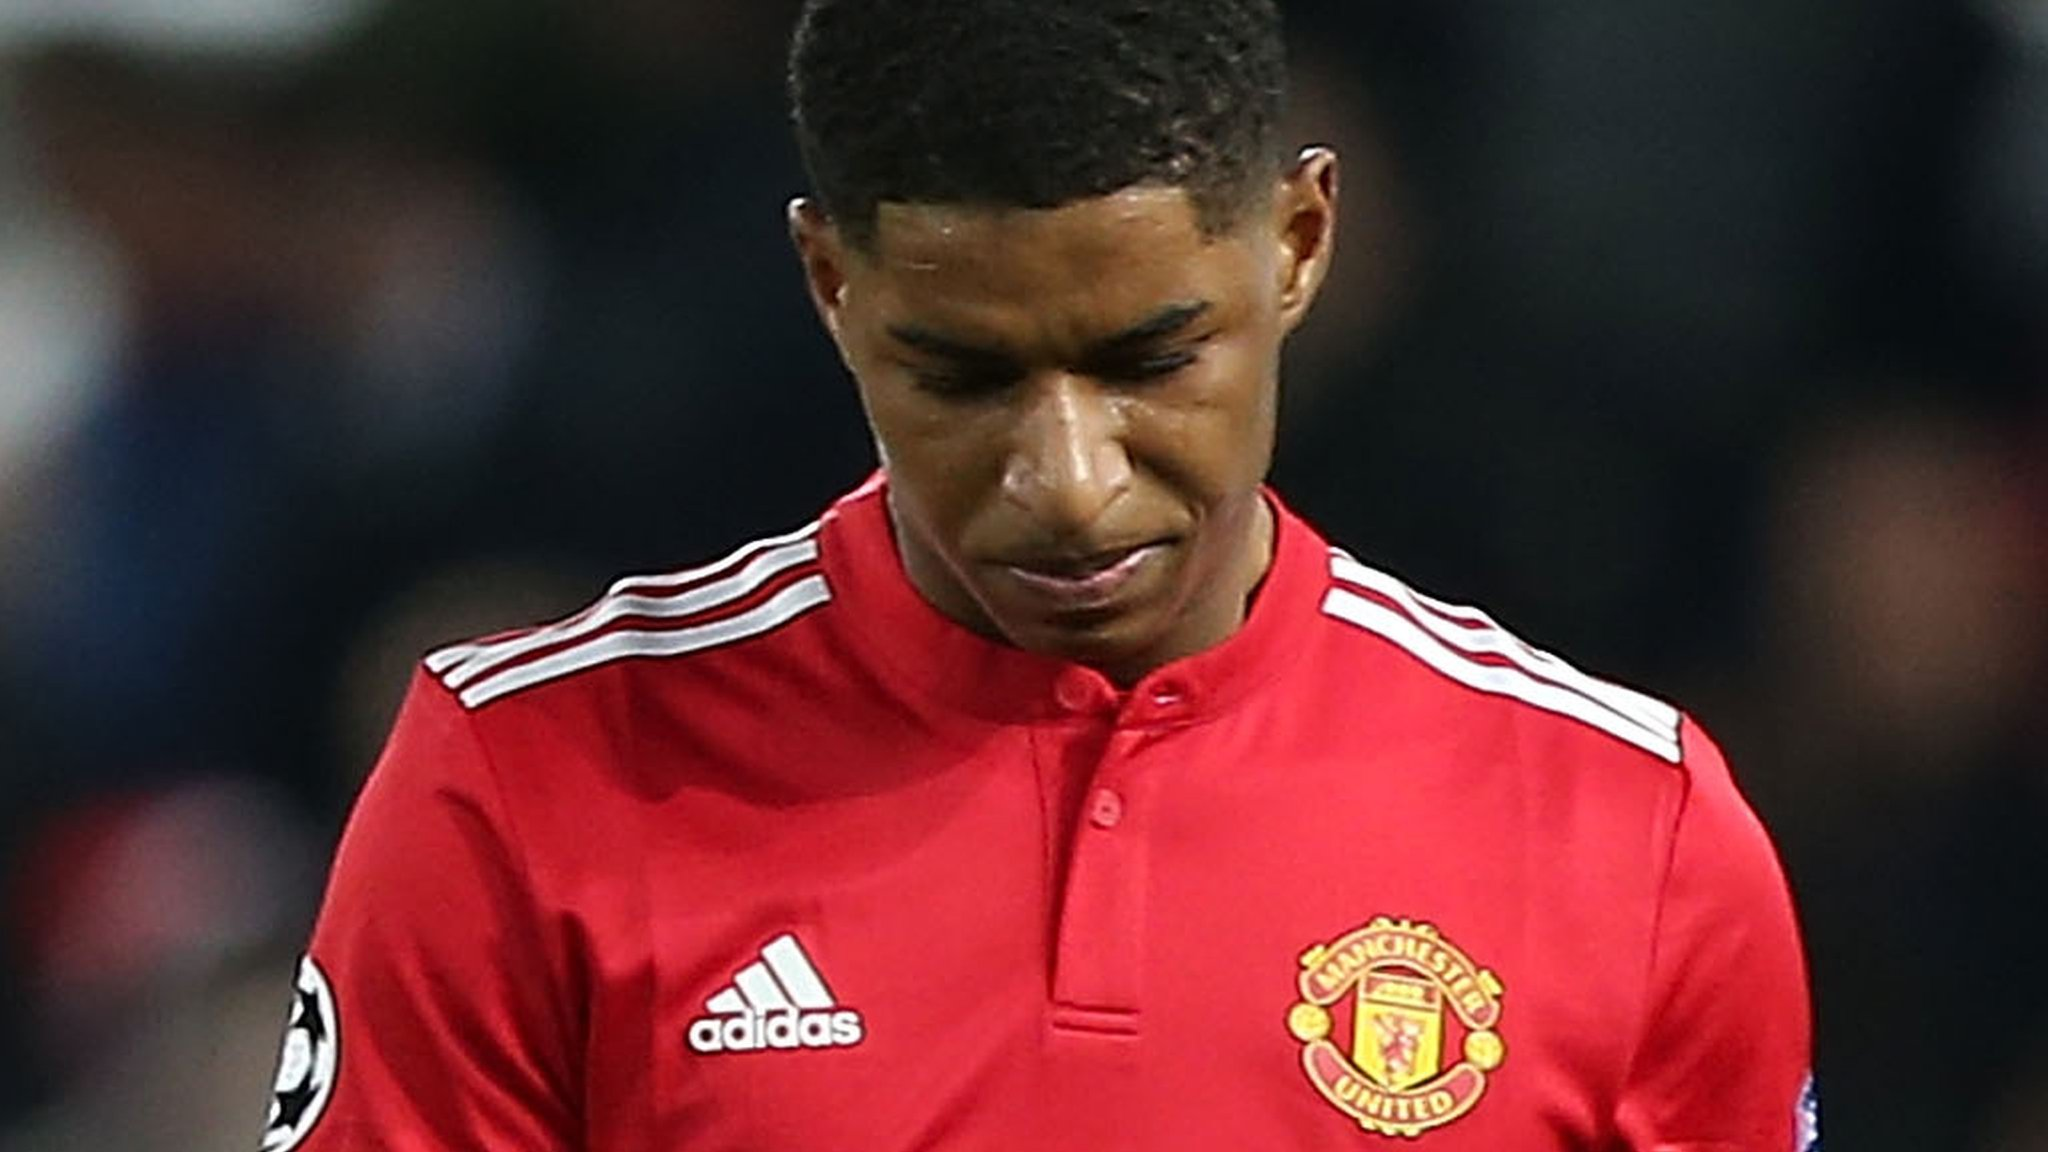 Gossip: Rashford could leave Man Utd for more game time